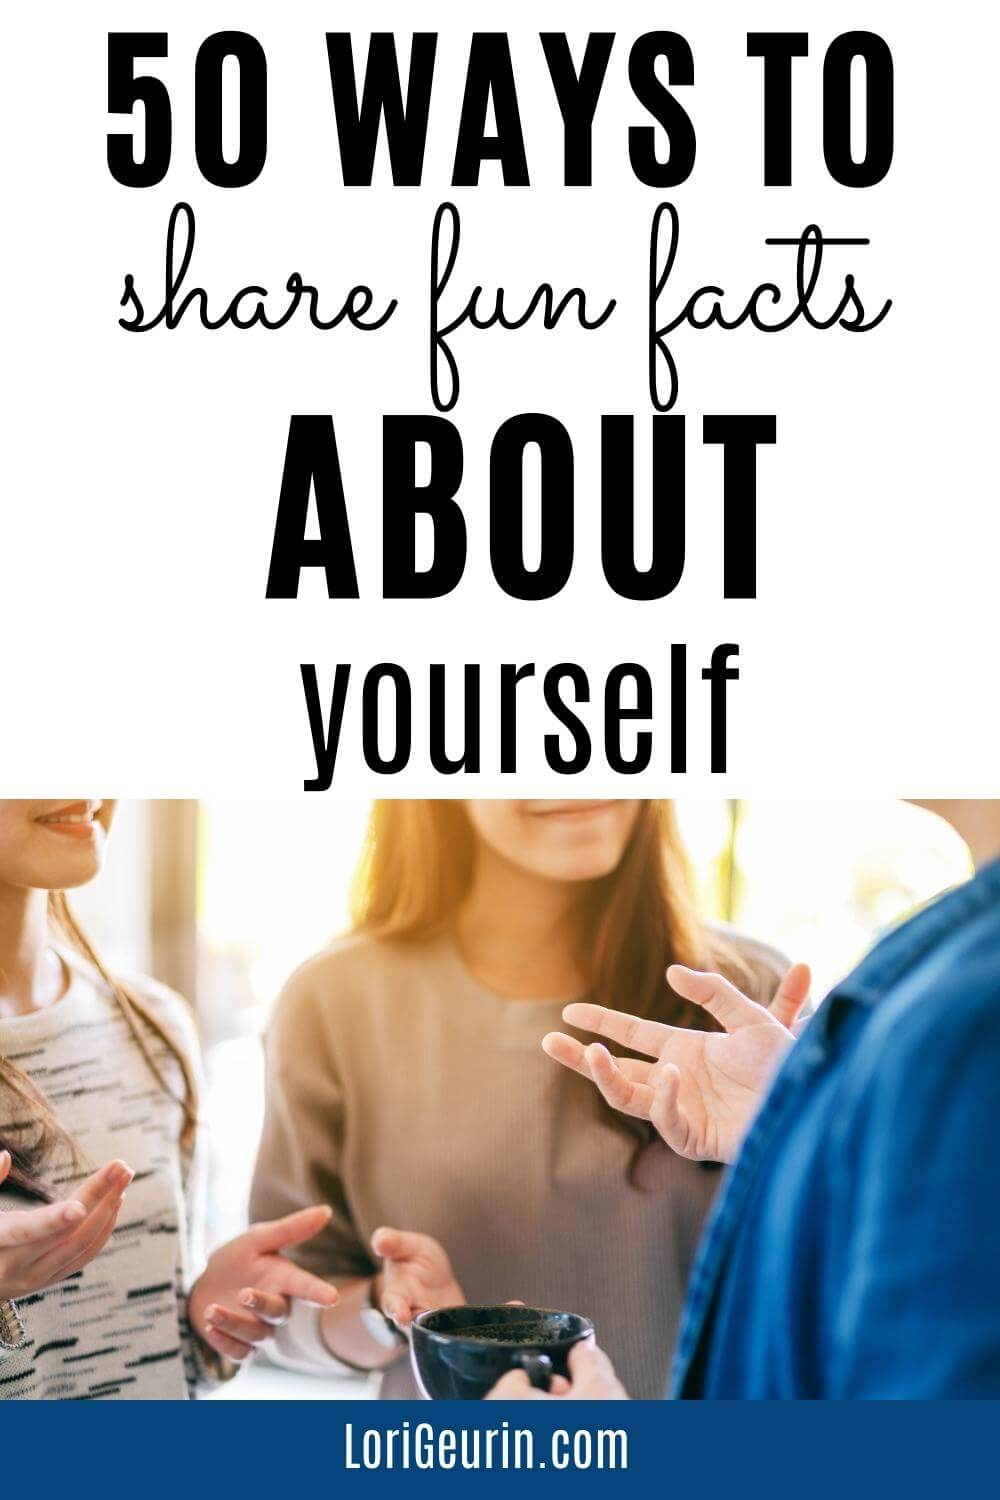 sharing fun facts about you with a group